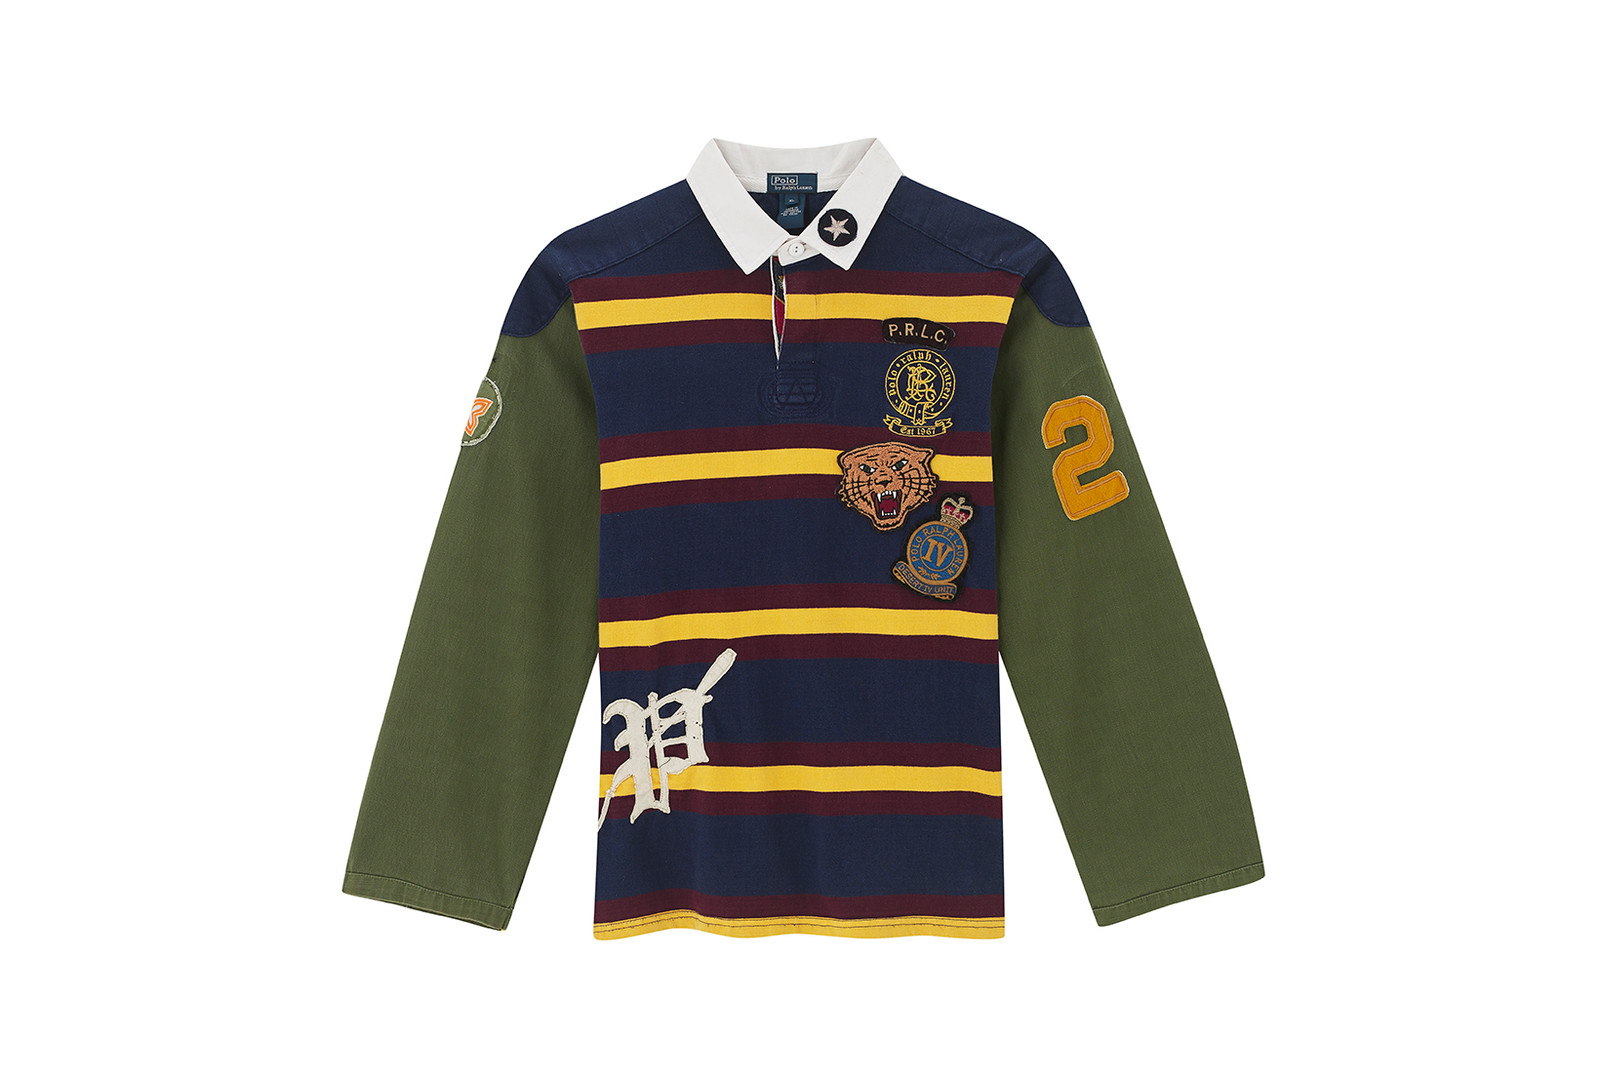 Polo Ralph Lauren Upcycled Vintage Archive Selfridges London Customized Unique One-of-One Release Information pop-up buy cop details